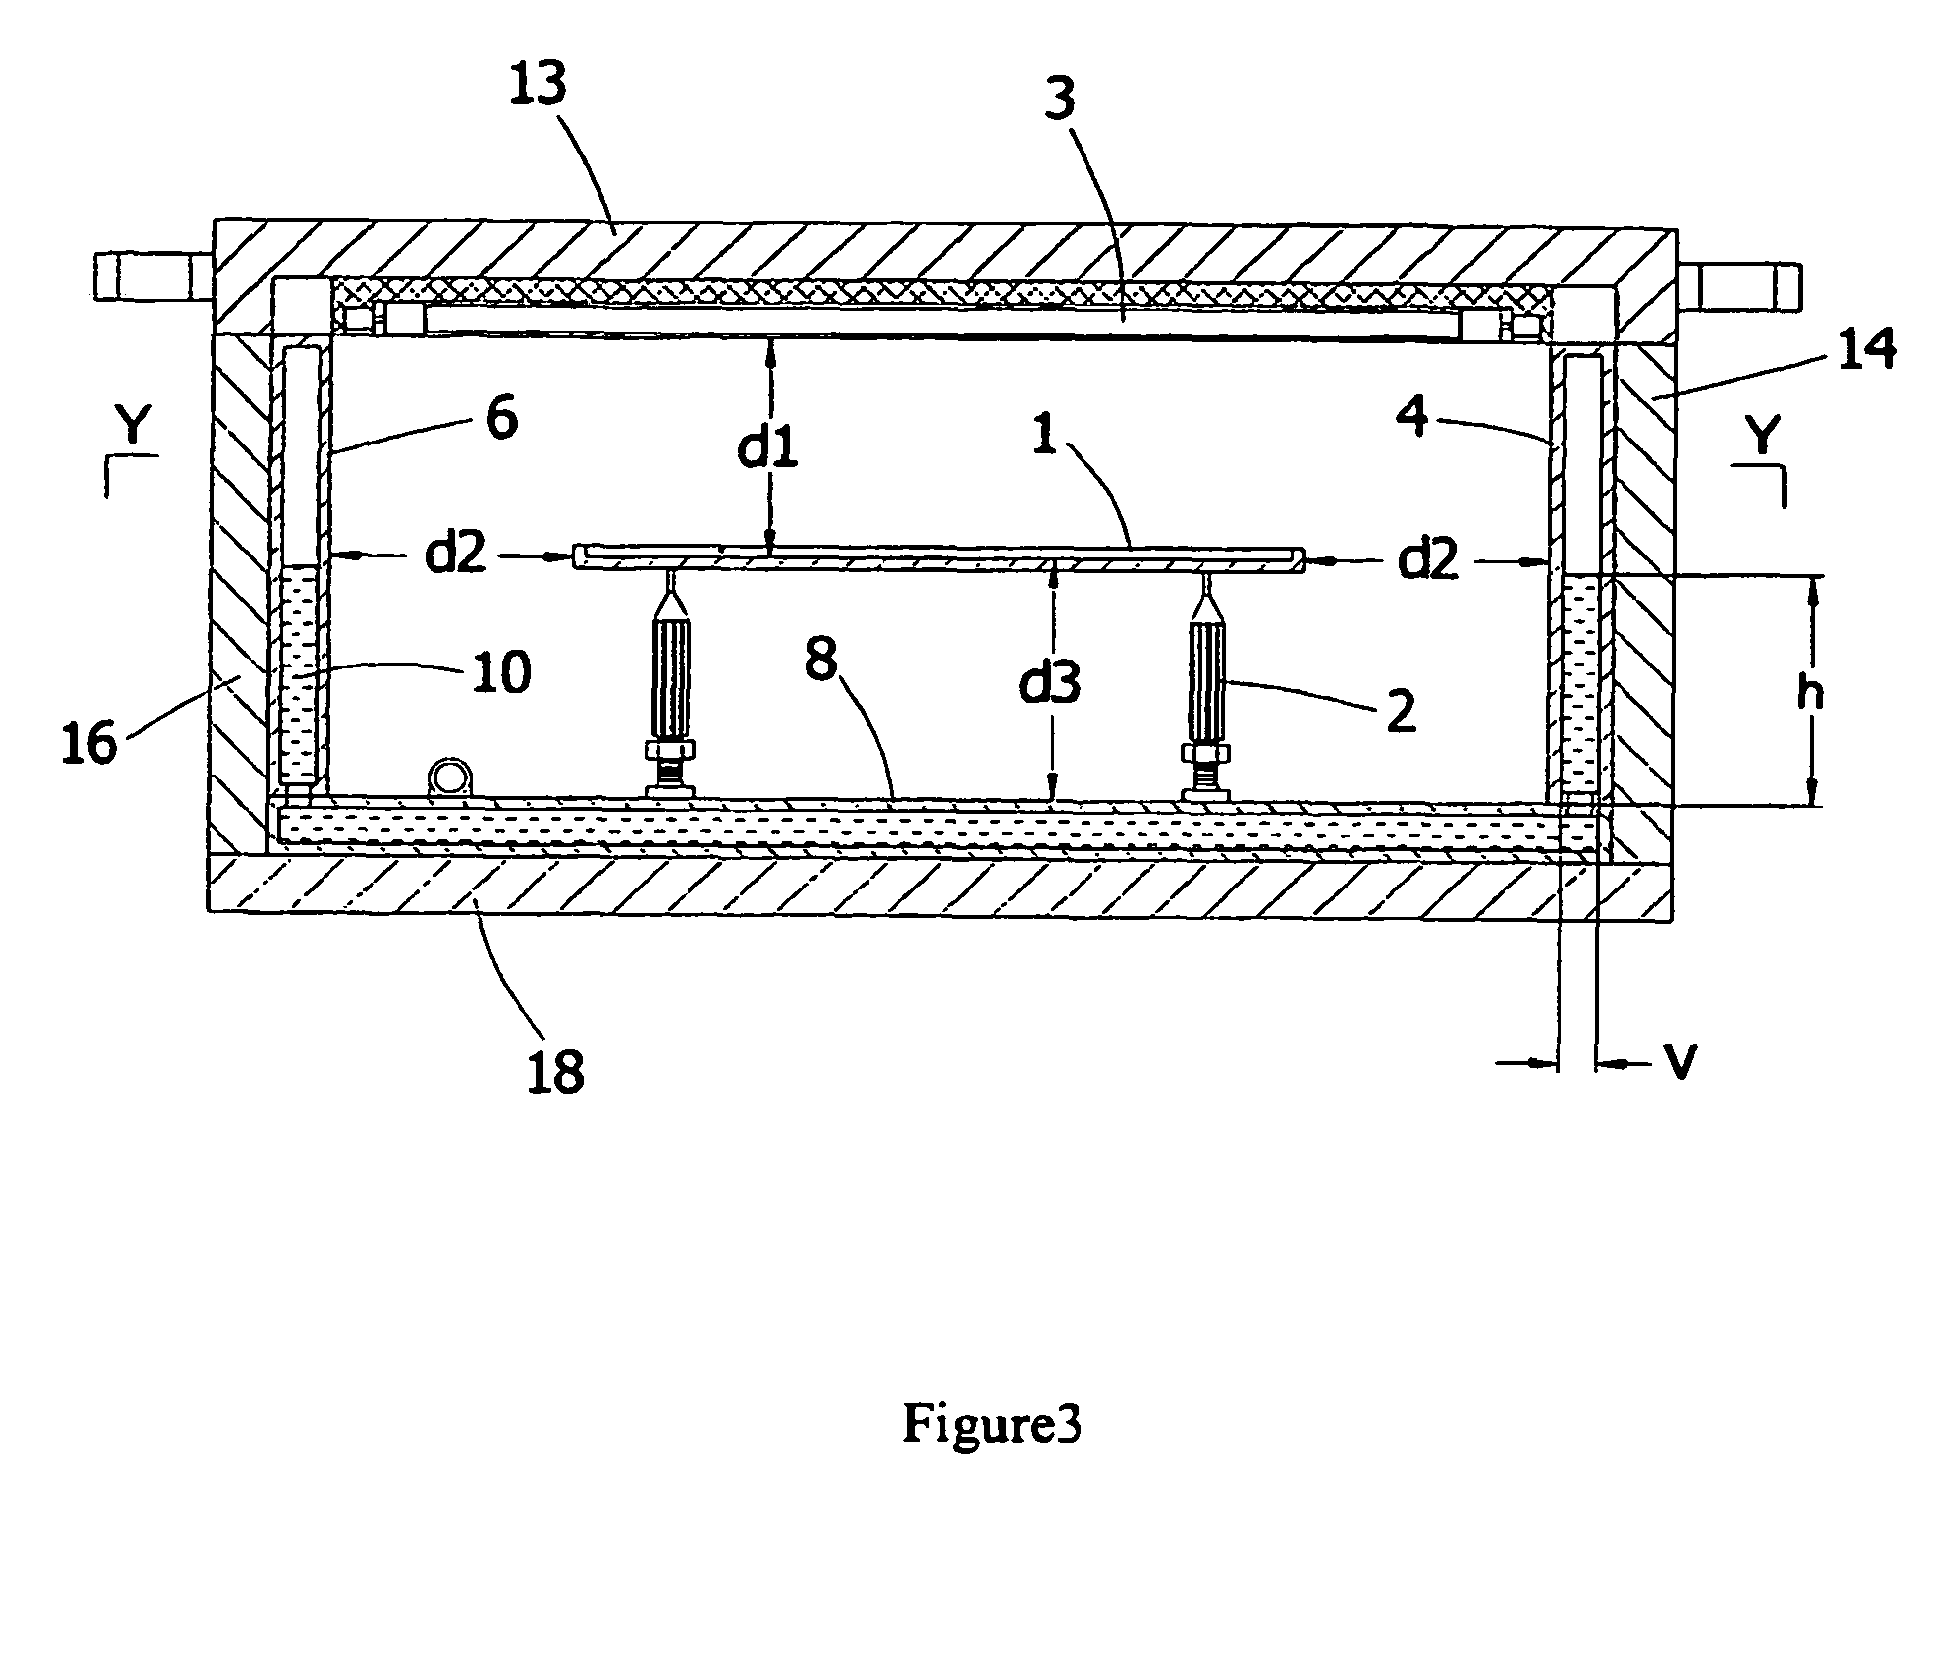 membrane technique for processing liquid radioactive Supported liquid membrane (slm), a subcategory of liquid membranes and a carrier-based extraction technique is a promising technology for separation and recovery of organic acids from dilute solutions.